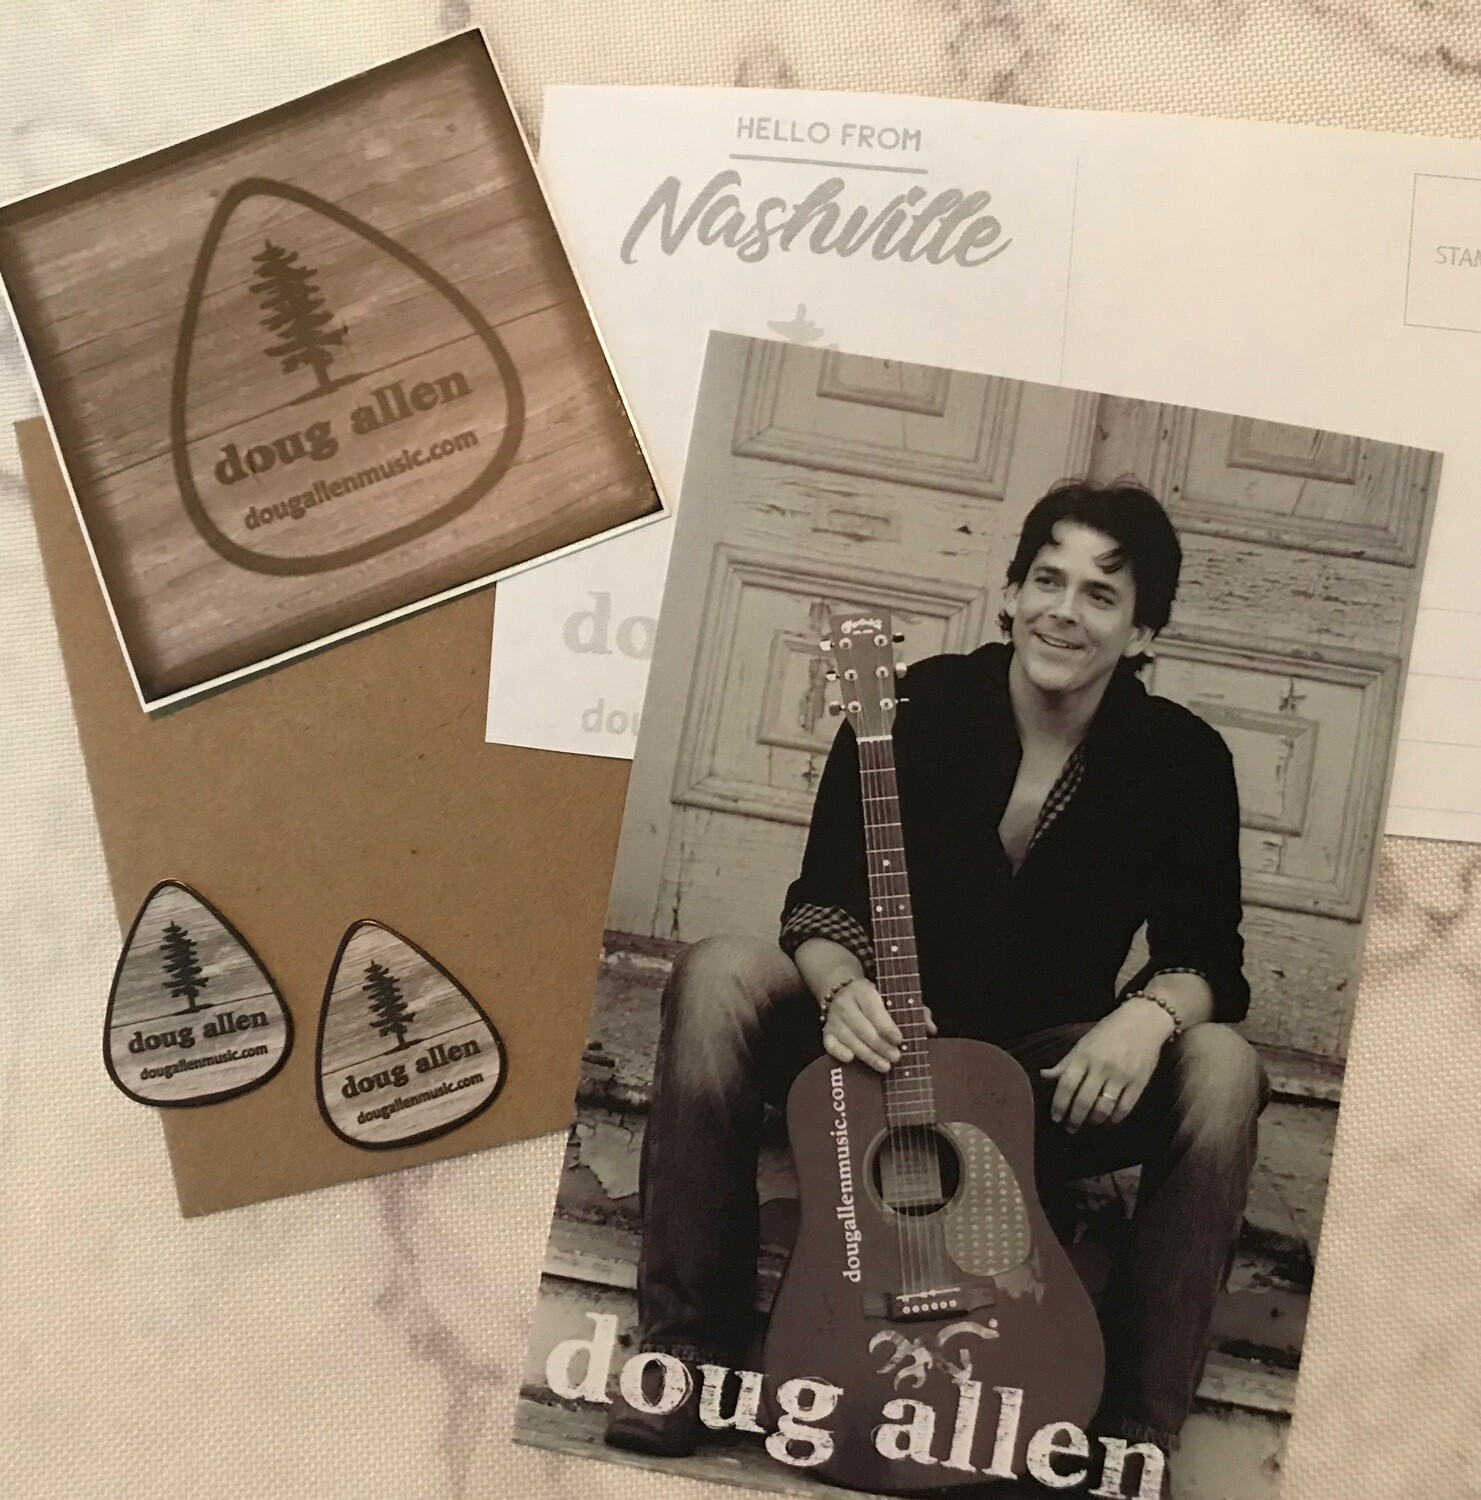 Doug Allen Fan Kit